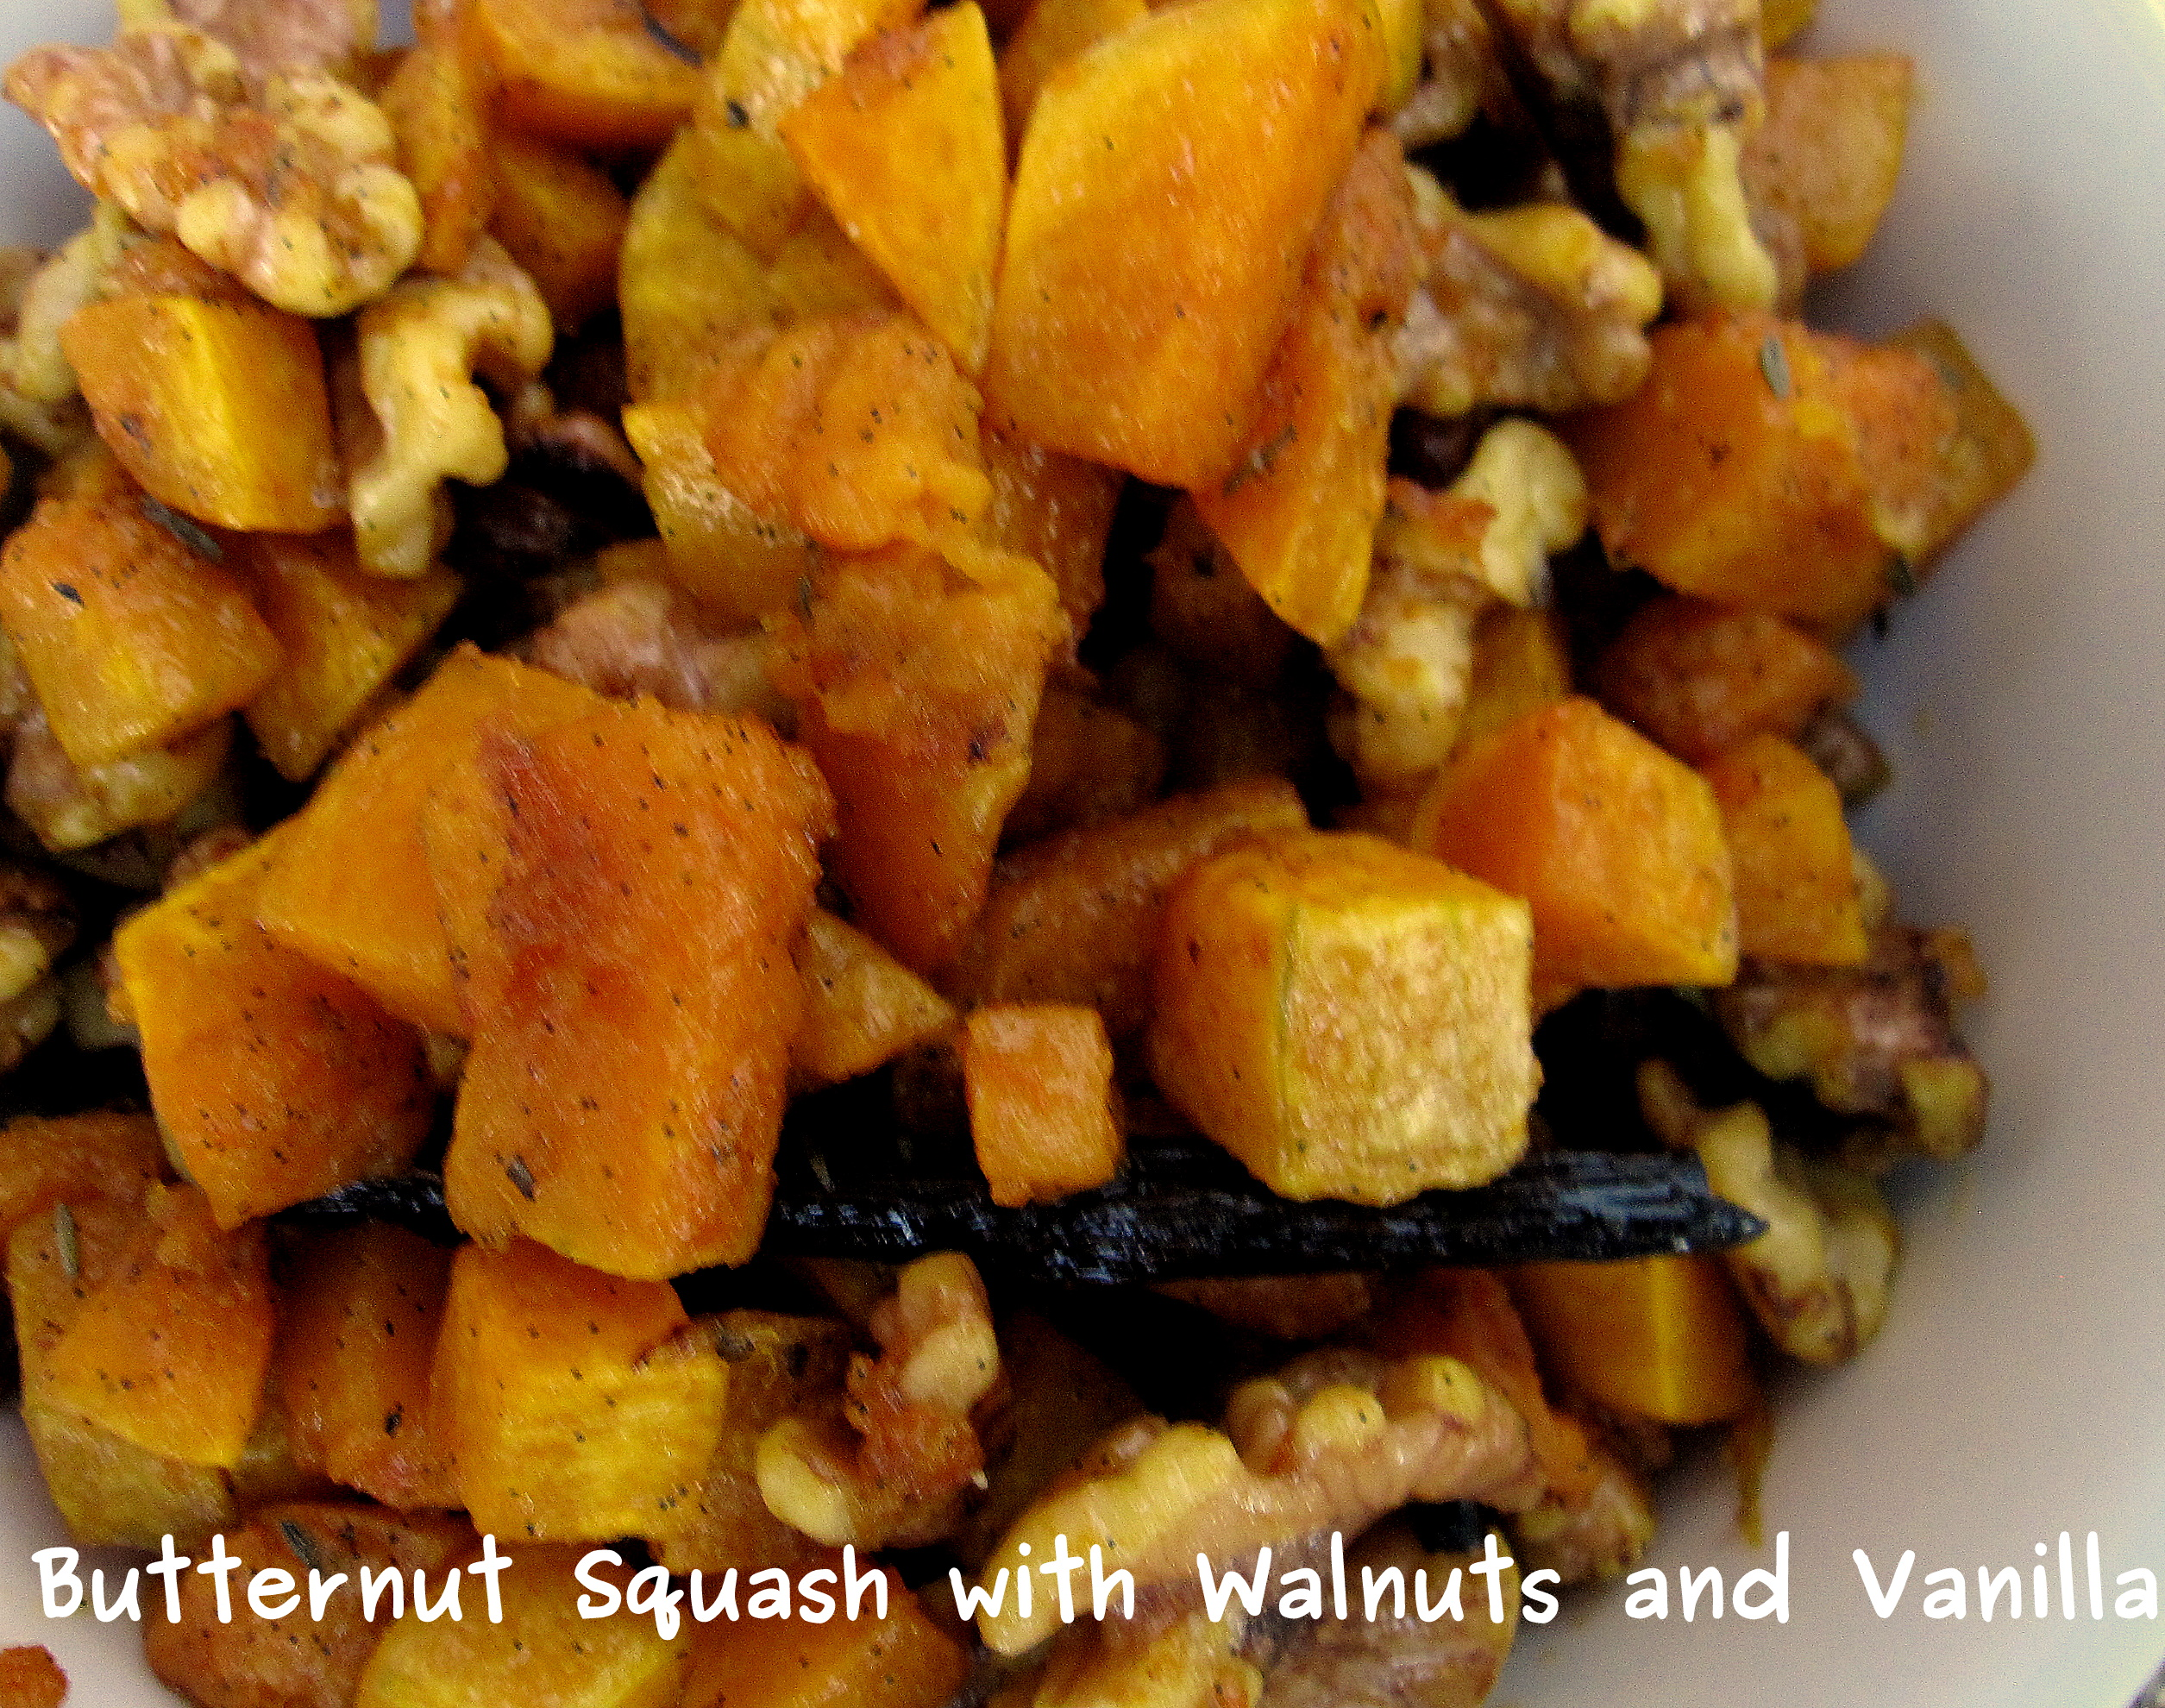 Butternut Squash with Walnuts and Vanilla from Simply Recipes